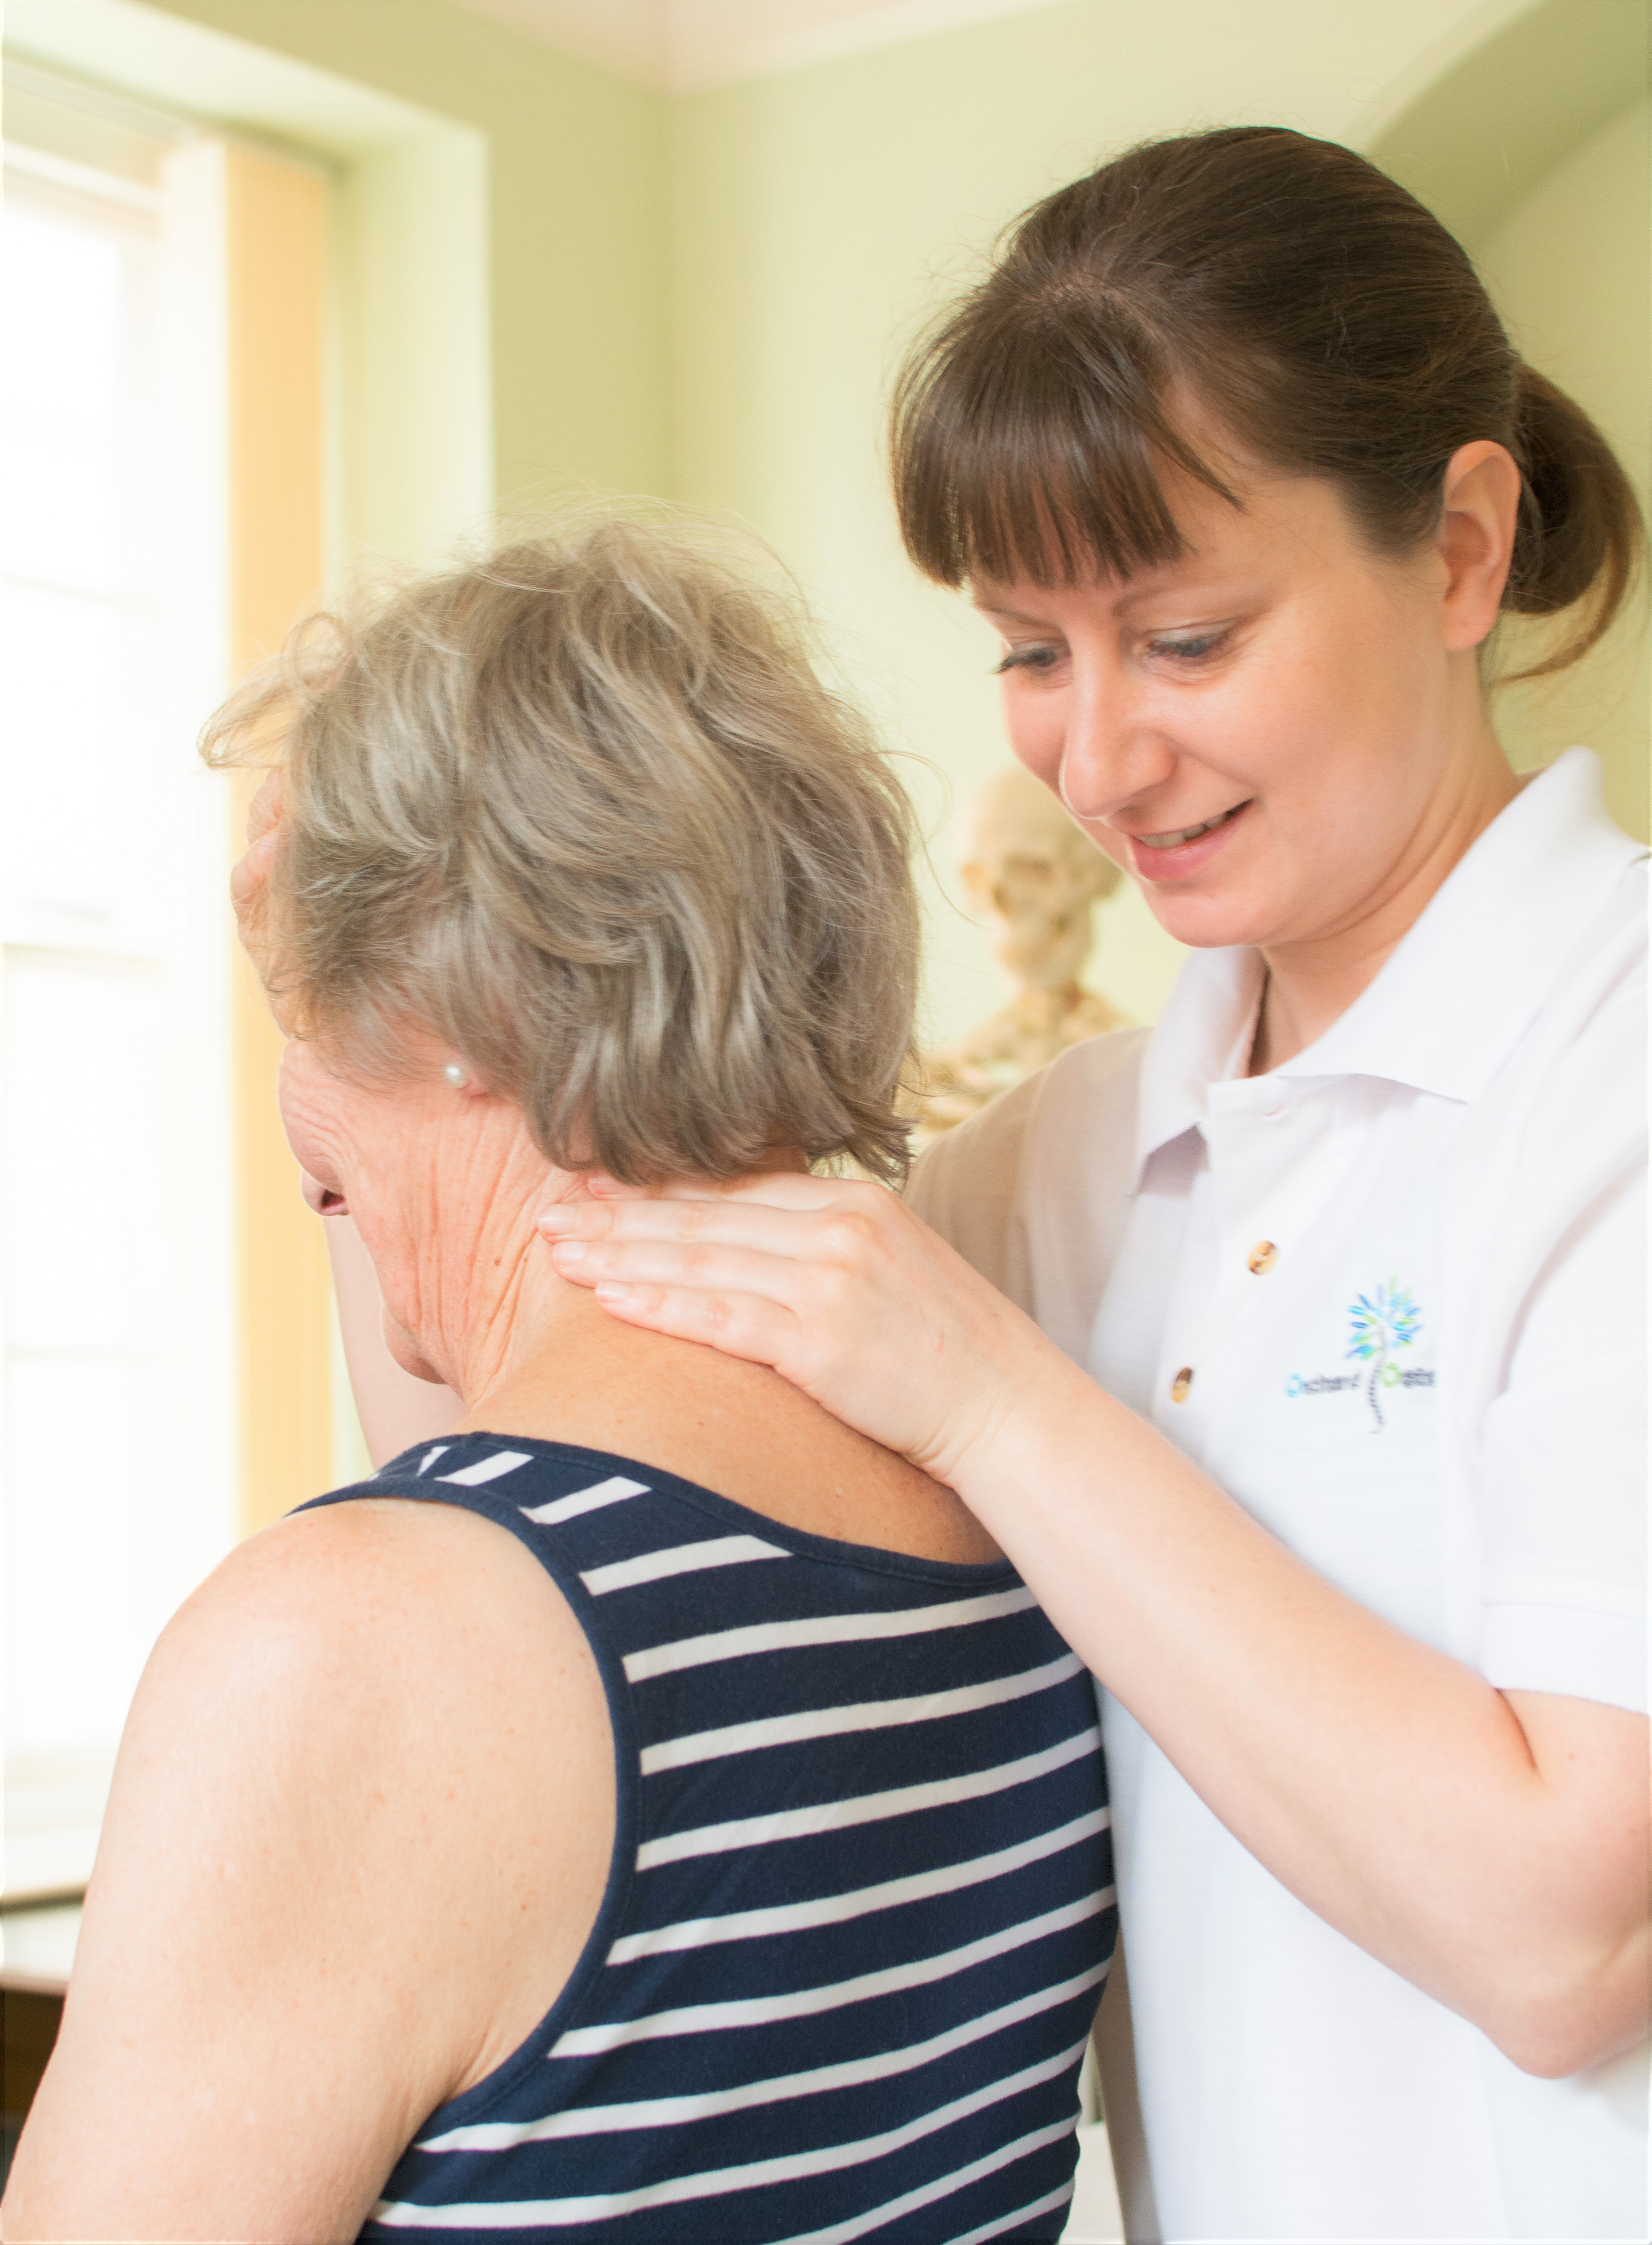 Cher Crook, Osteopath